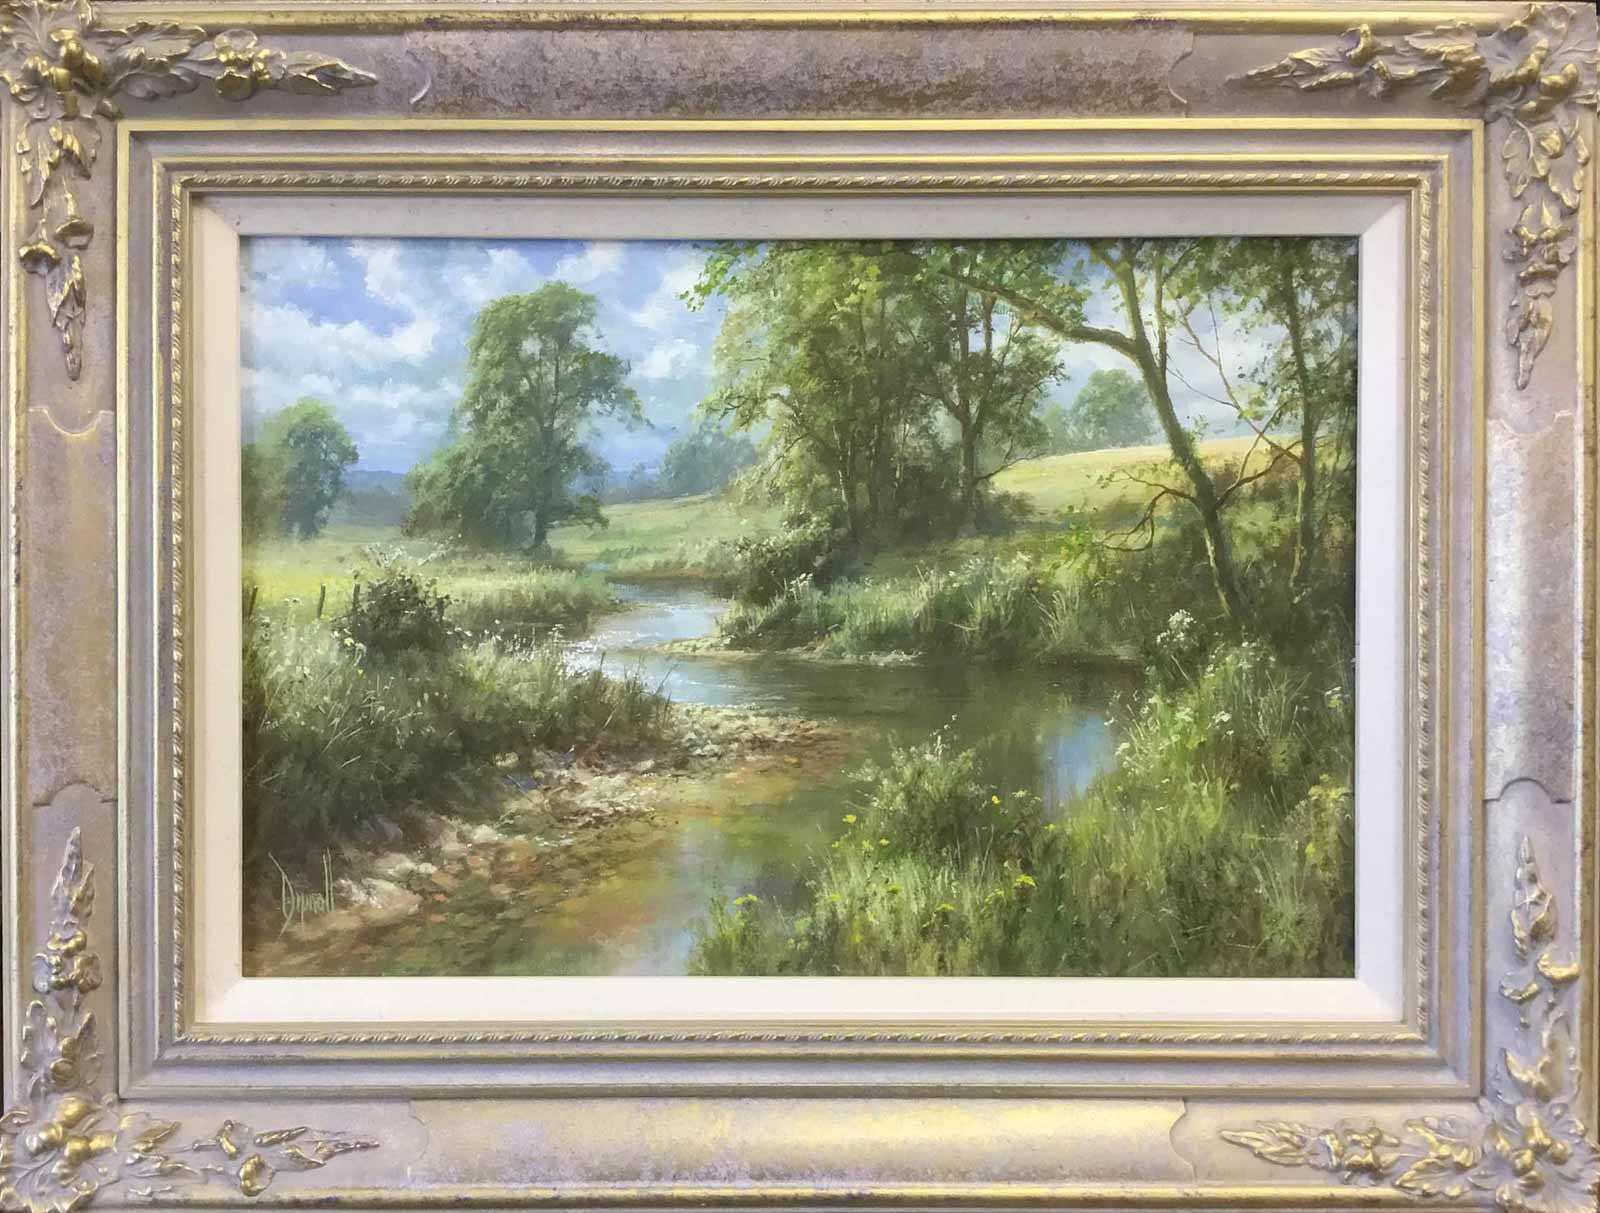 The Stream in Summer, David Dipnall